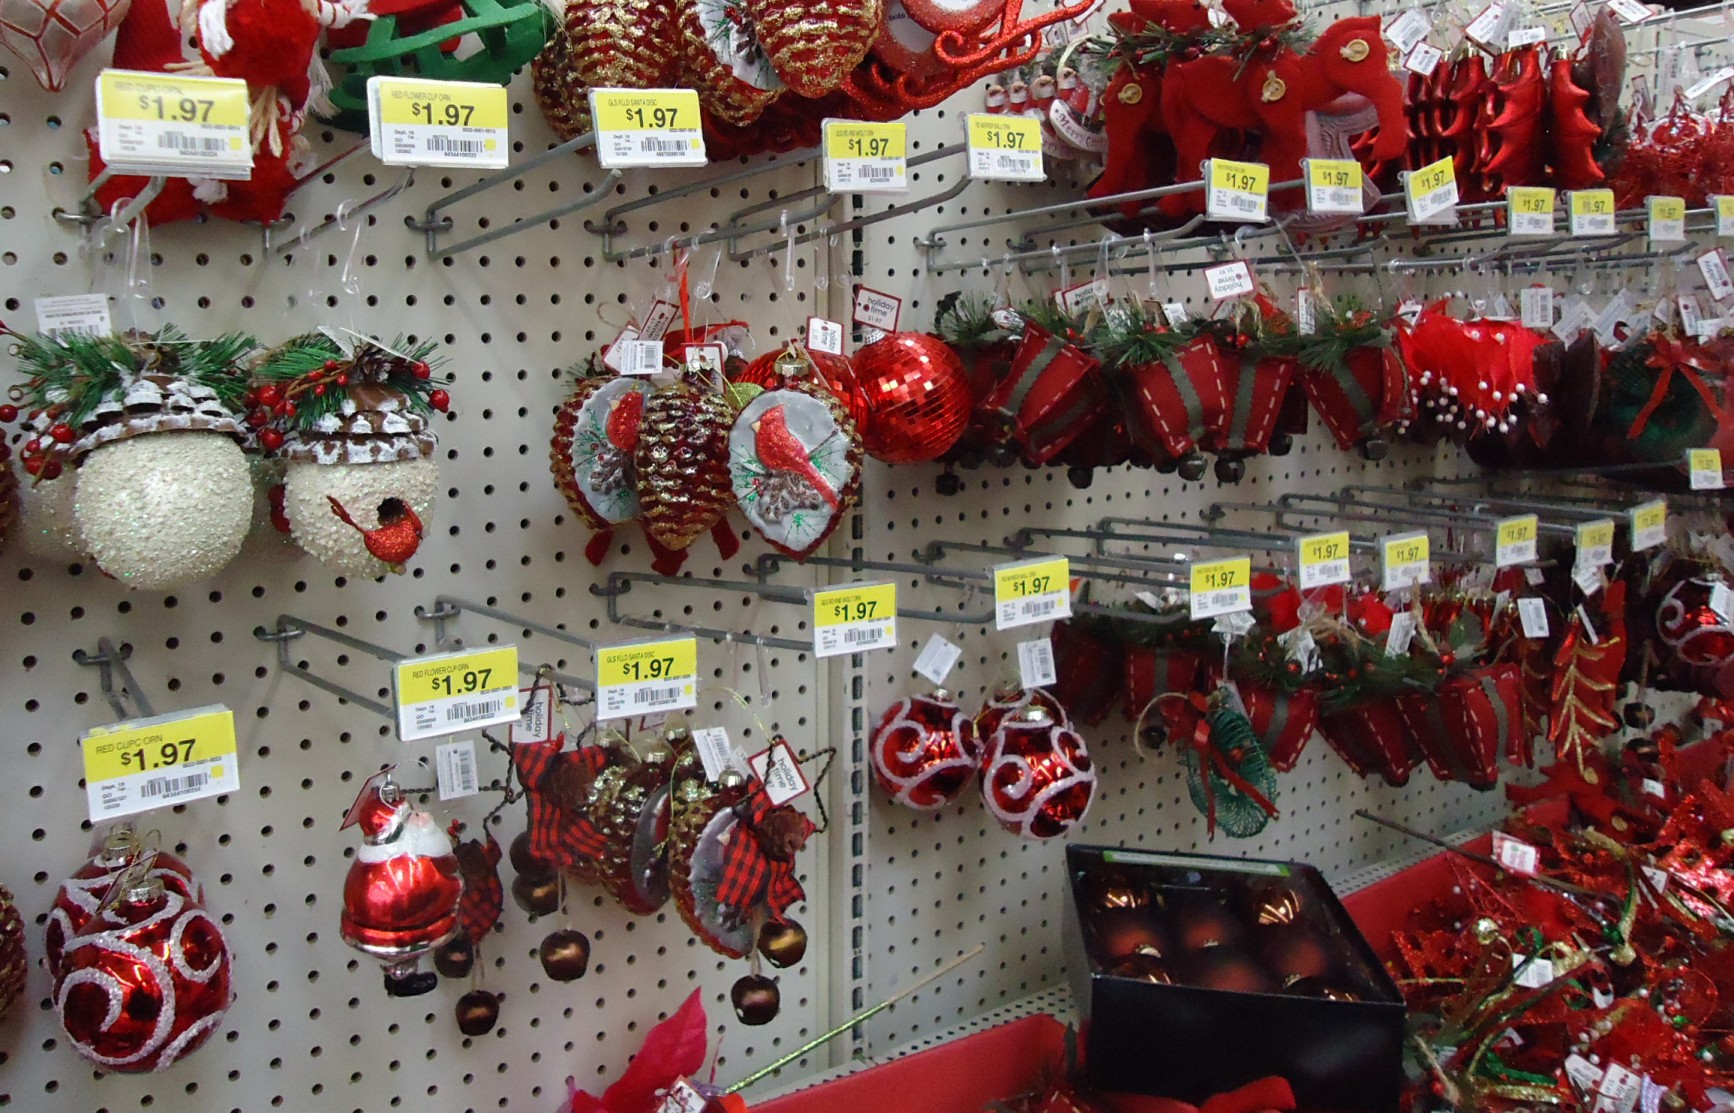 FileChristmas decorations in a store assorted 9jpg Wikimedia